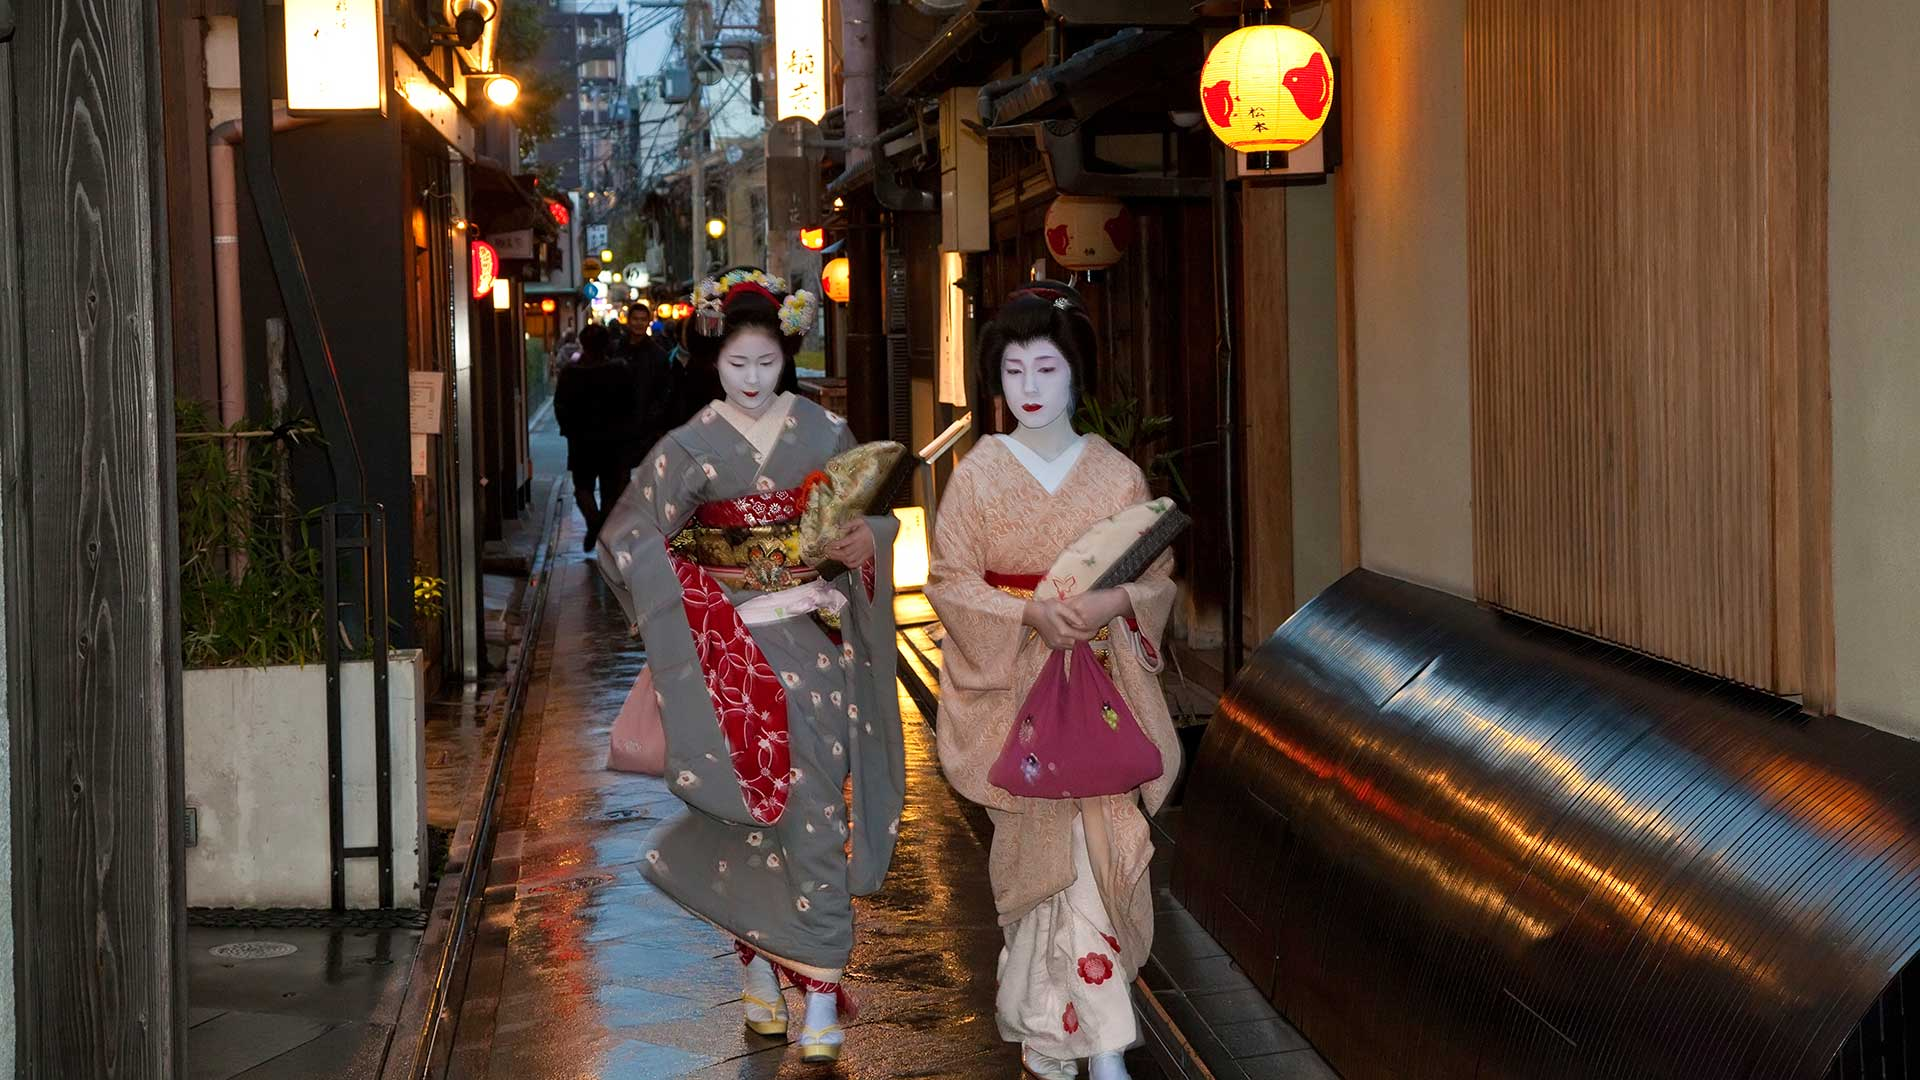 Geisha, in narrow alley, Gion District, Kyoto, Japan